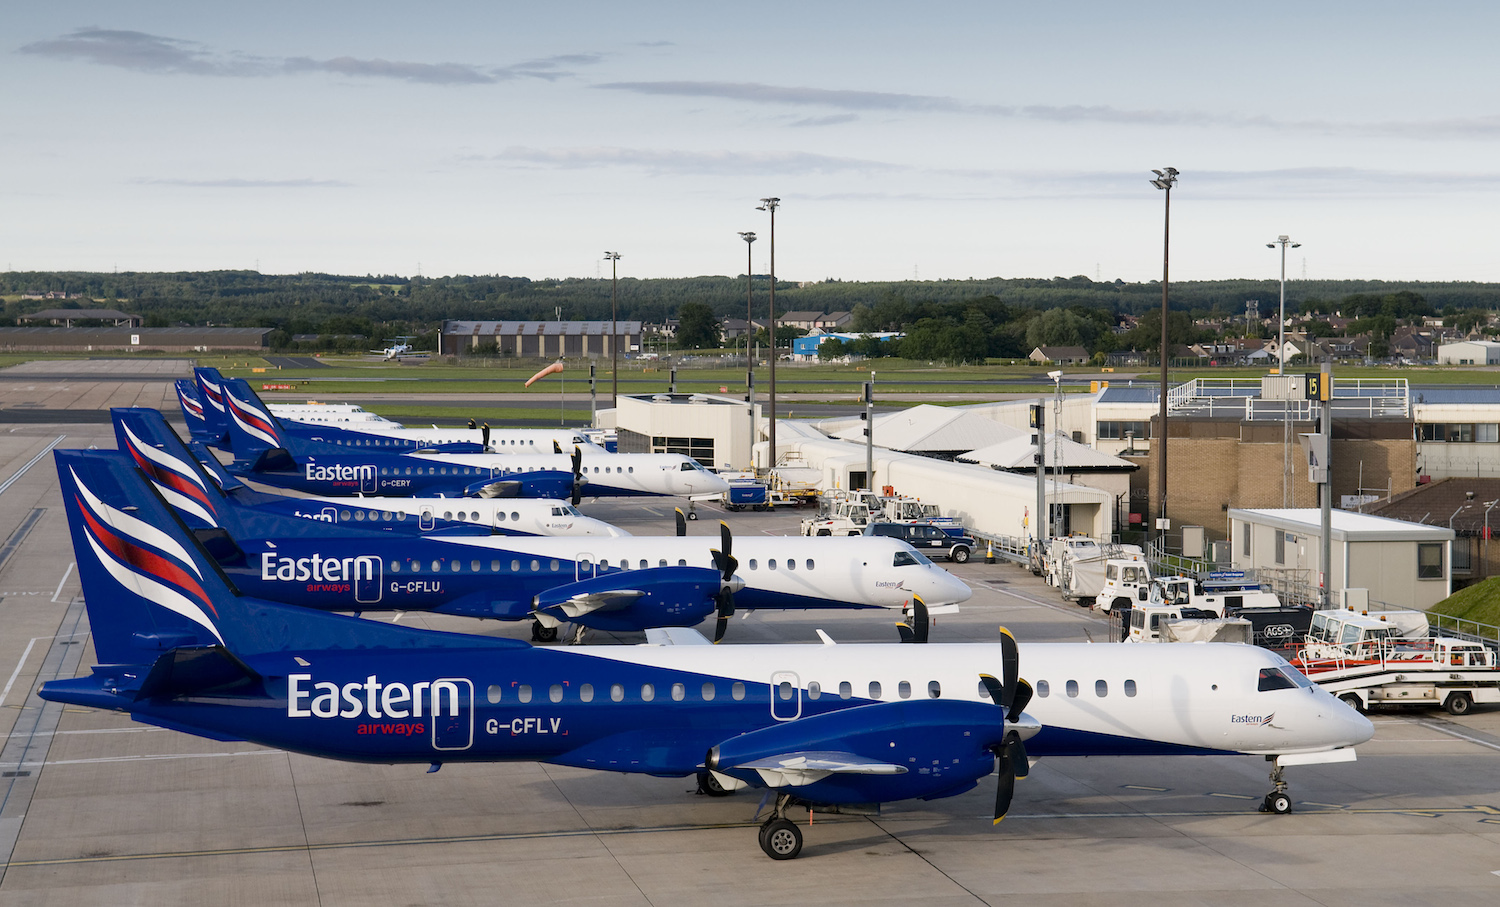 Airline suffers £5.2m loss as oil and gas passenger numbers fall